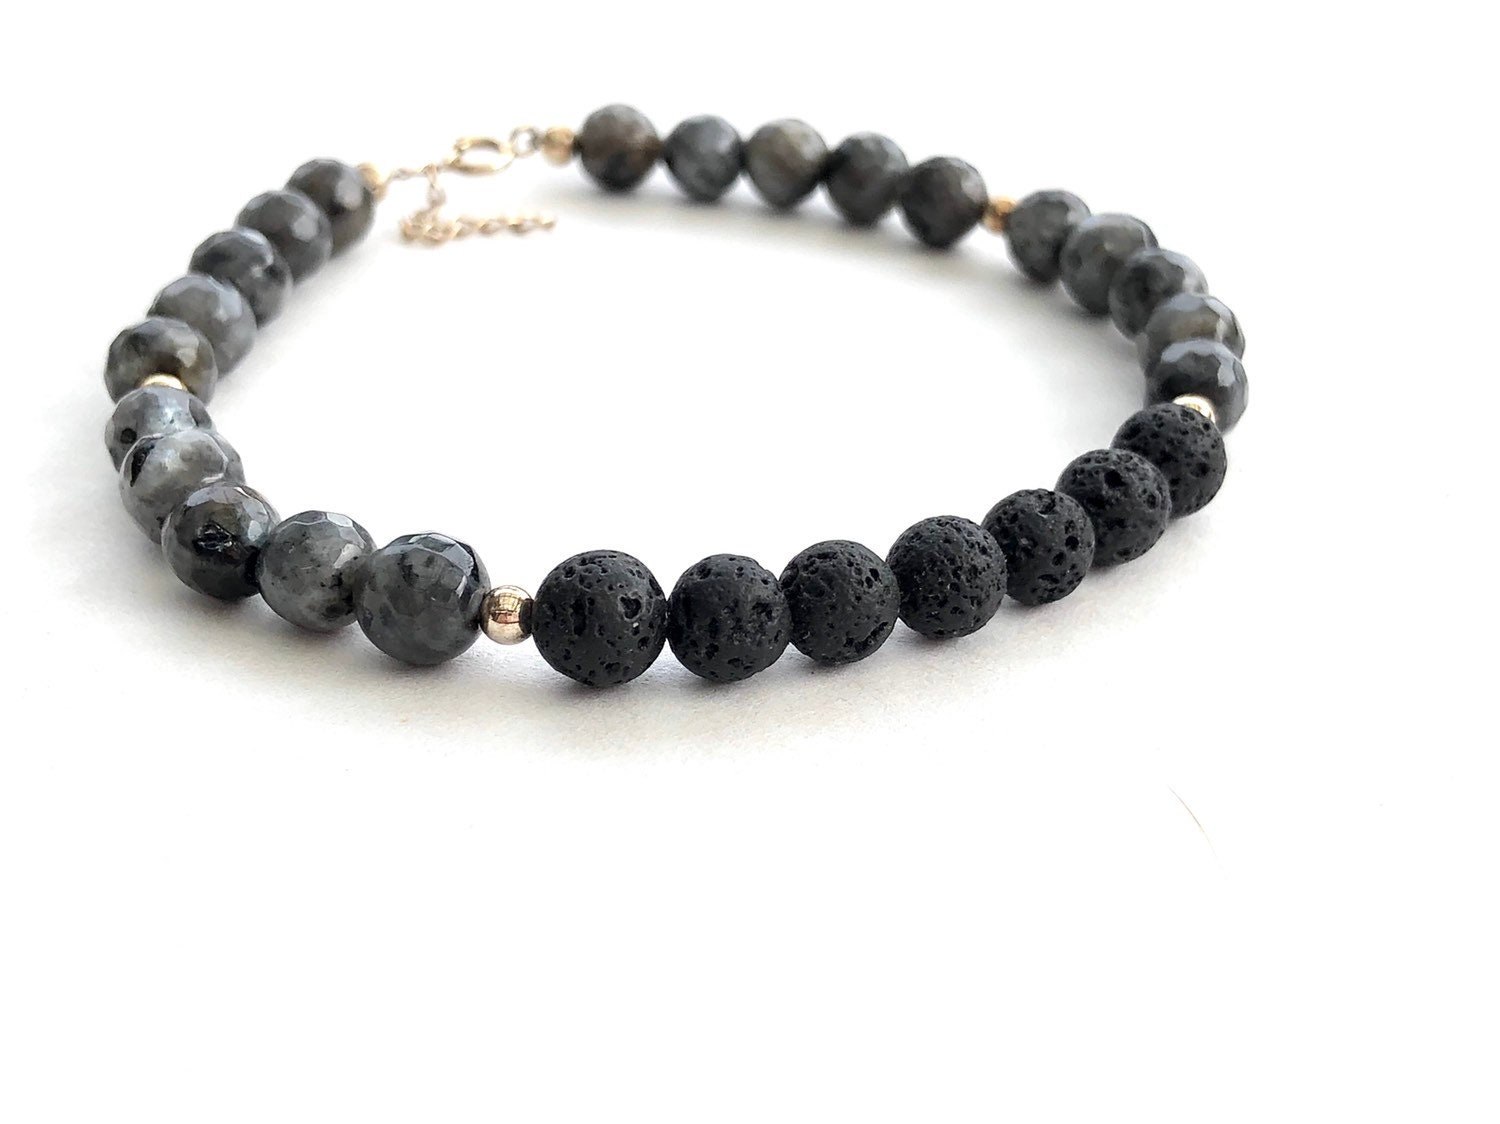 Bracelets Fashion Jewelry Aromatherapy Jewellery With Gems. Essential Oil Lava Stone Diffusing Bracelet